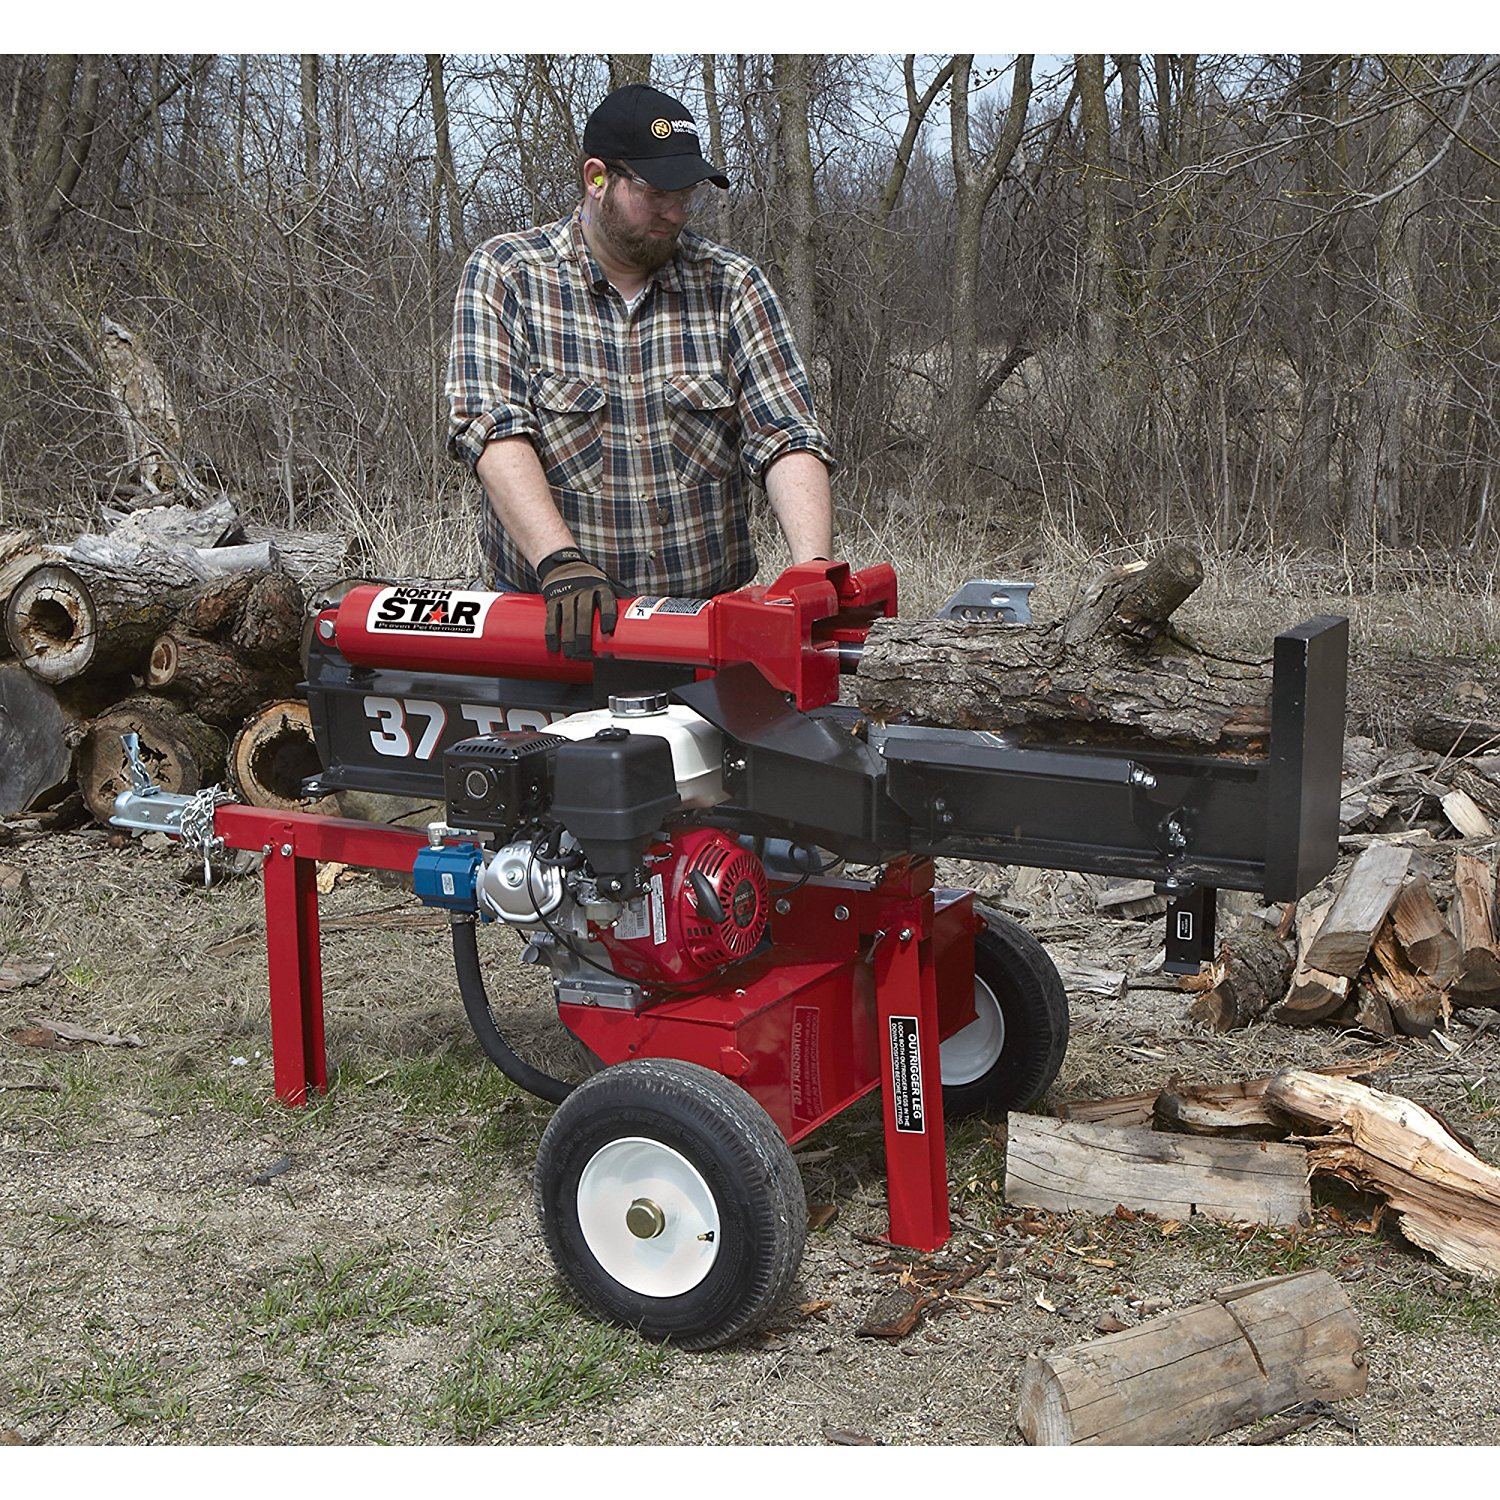 NorthStar_37-Ton, 270cc_hydraulic_powered_log_splitter